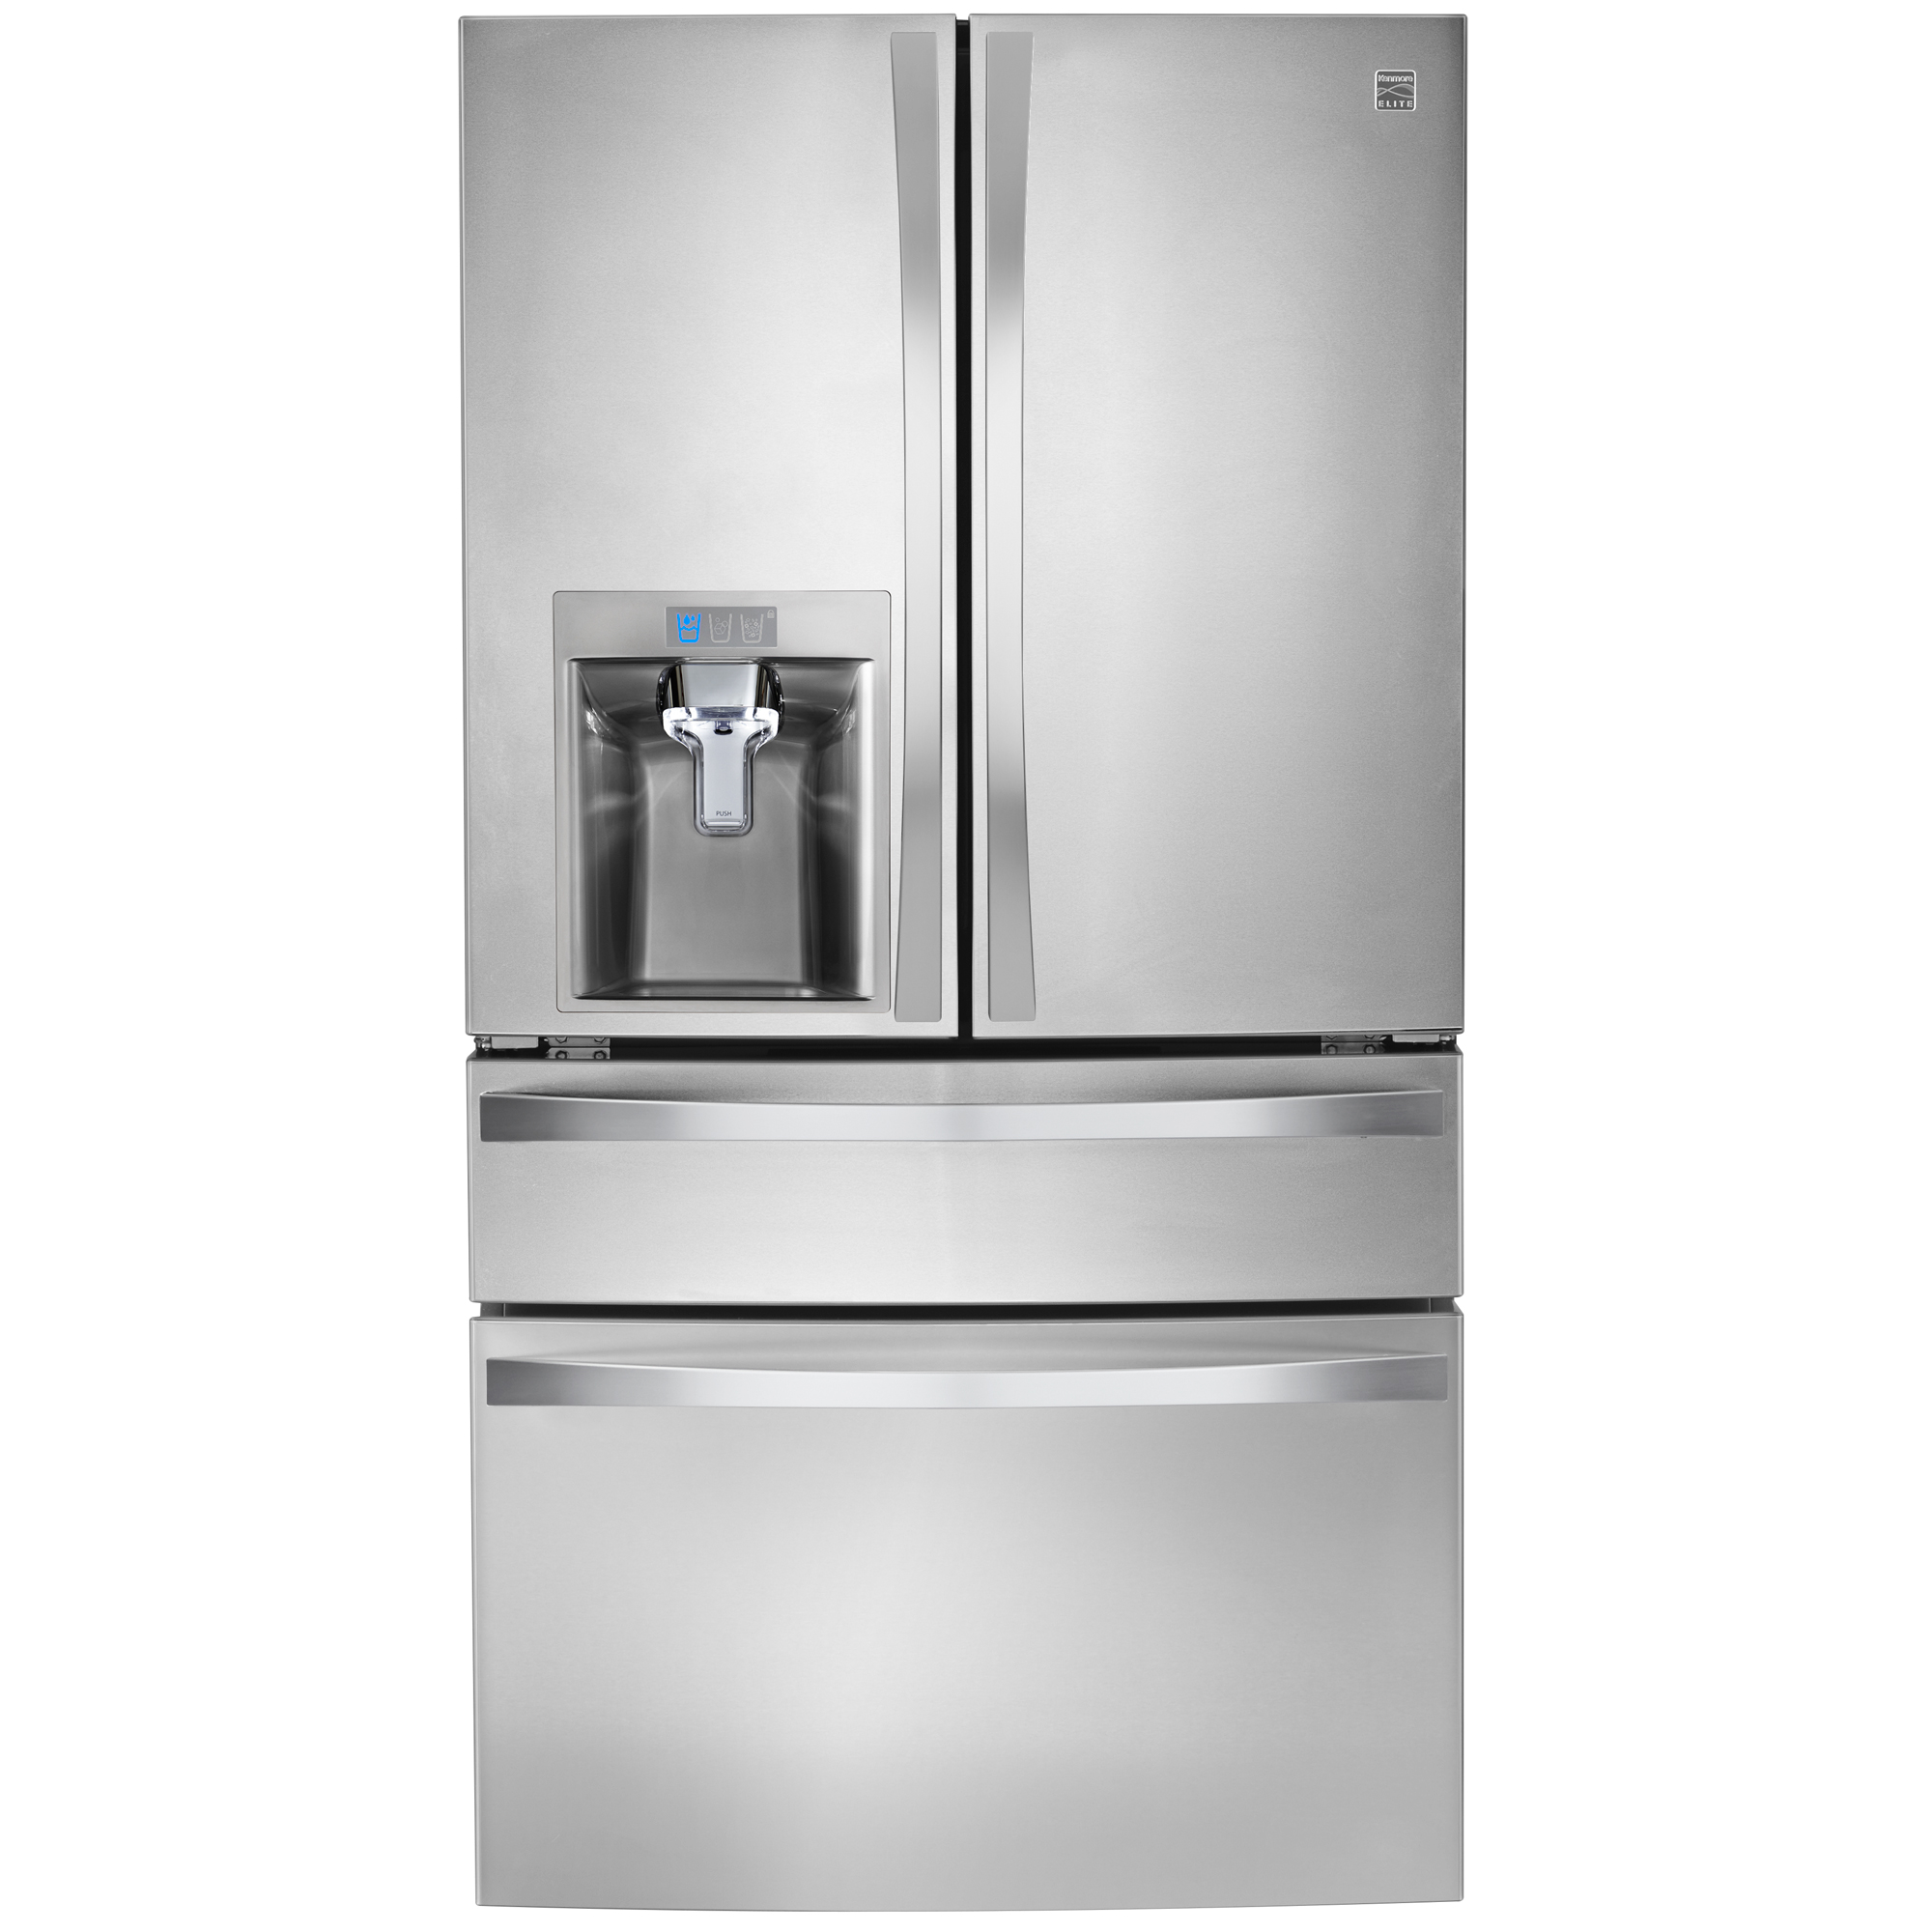 kitchen appliances pay monthly island base only kenmore 72483 29 9 cu ft 4 door bottom freezer fridgesears